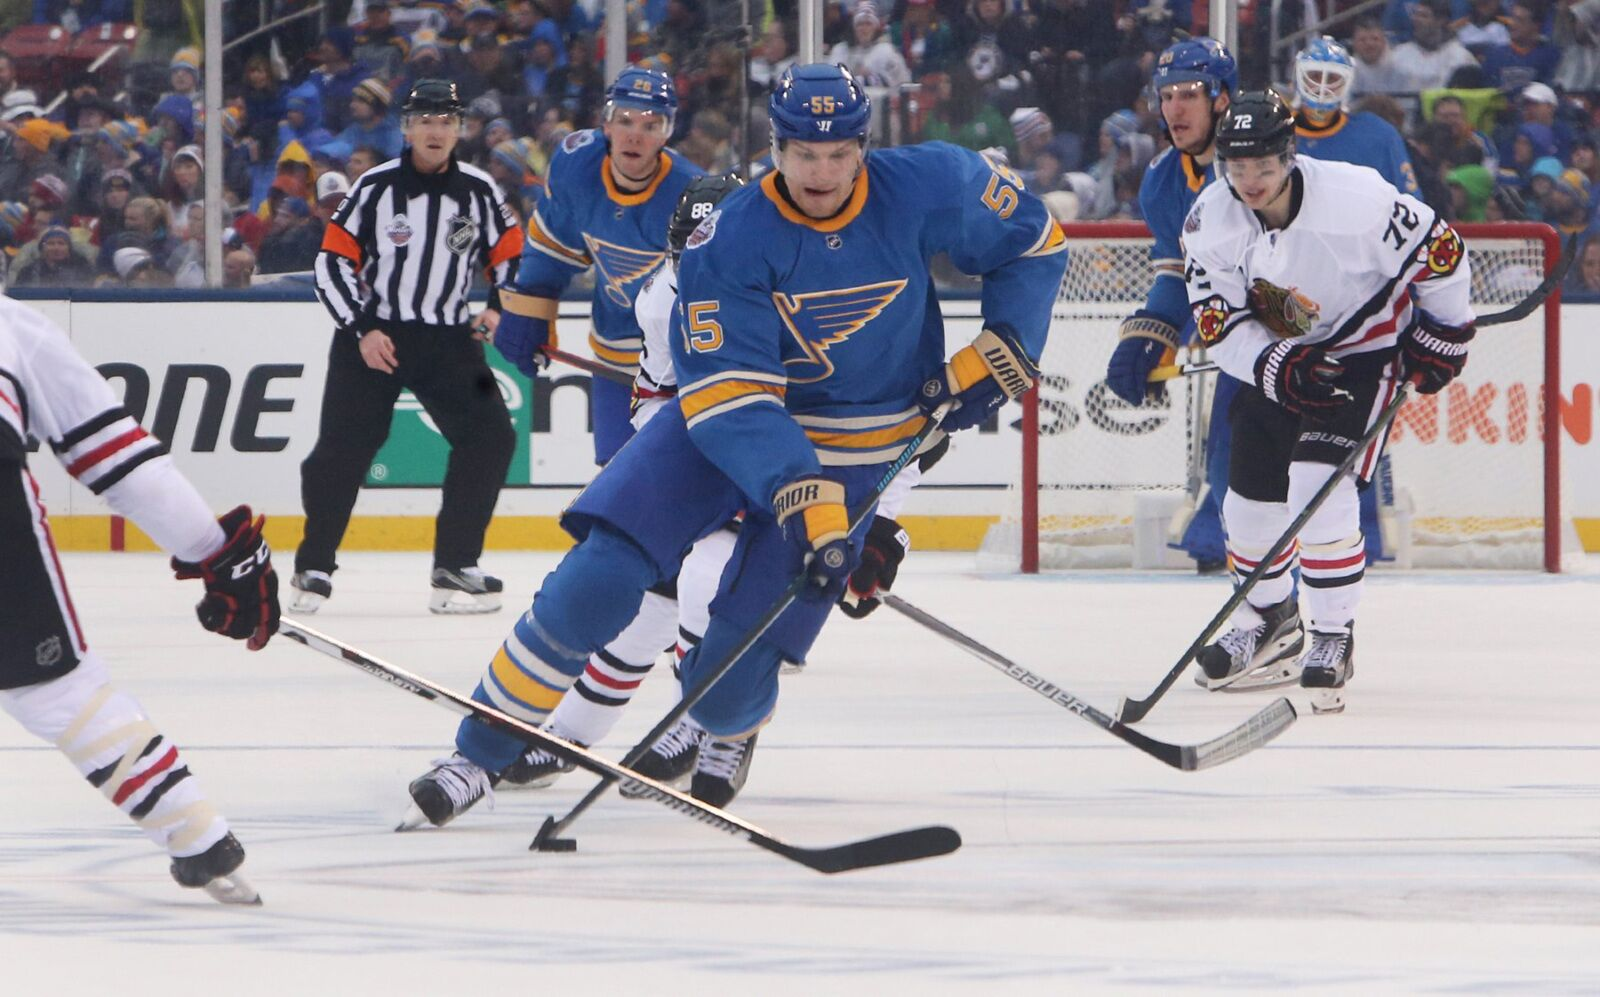 cb3358e5e1c St. Louis Blues Might Have Third Jersey In 2018-19